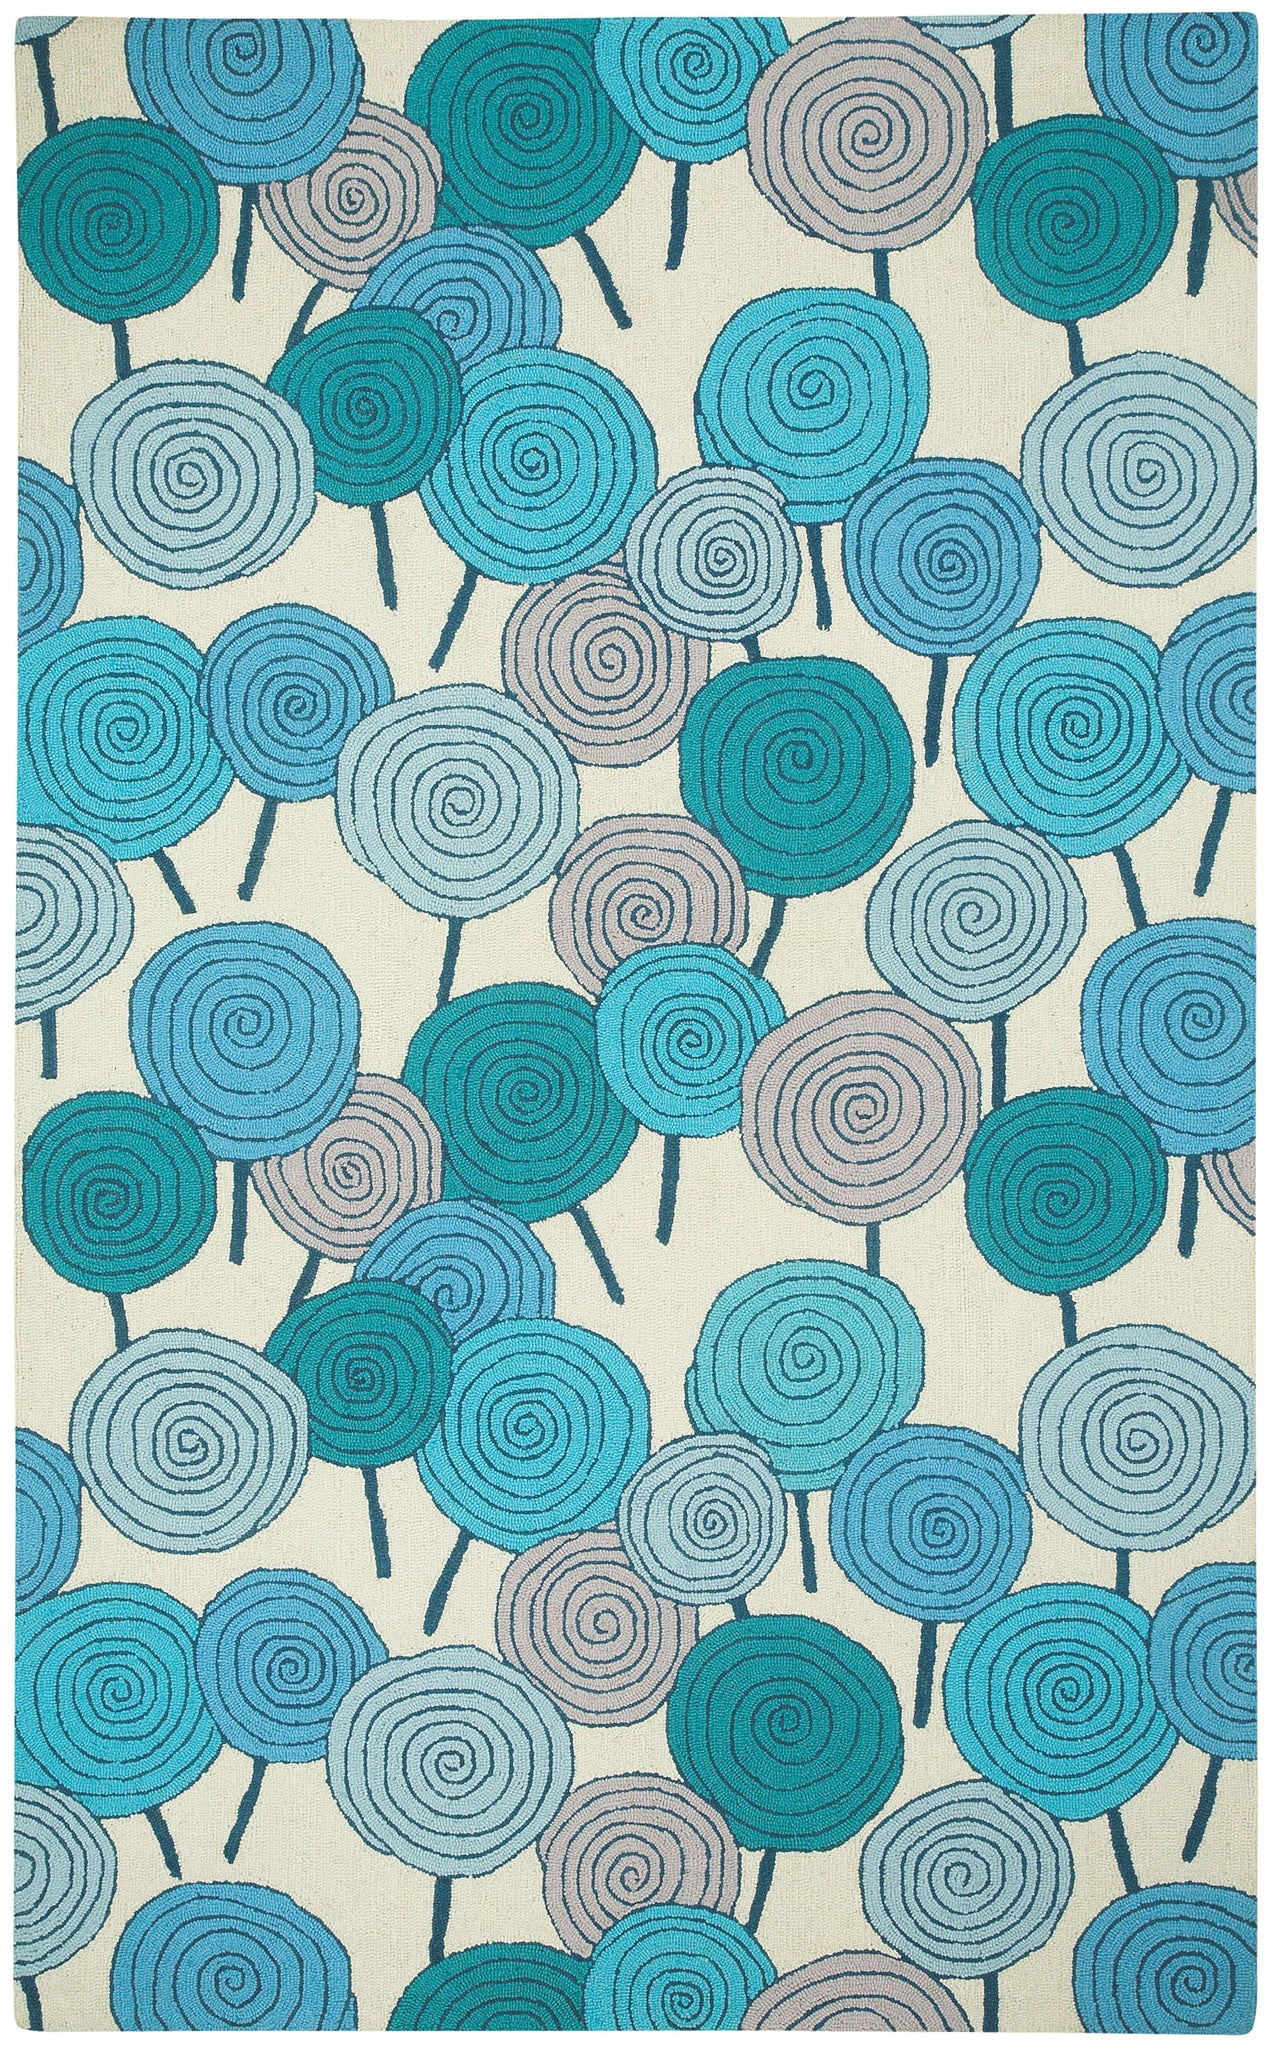 Capel Stick Candy 6064 Azure Kiwi 420 Area Rug by Hable Construction main image